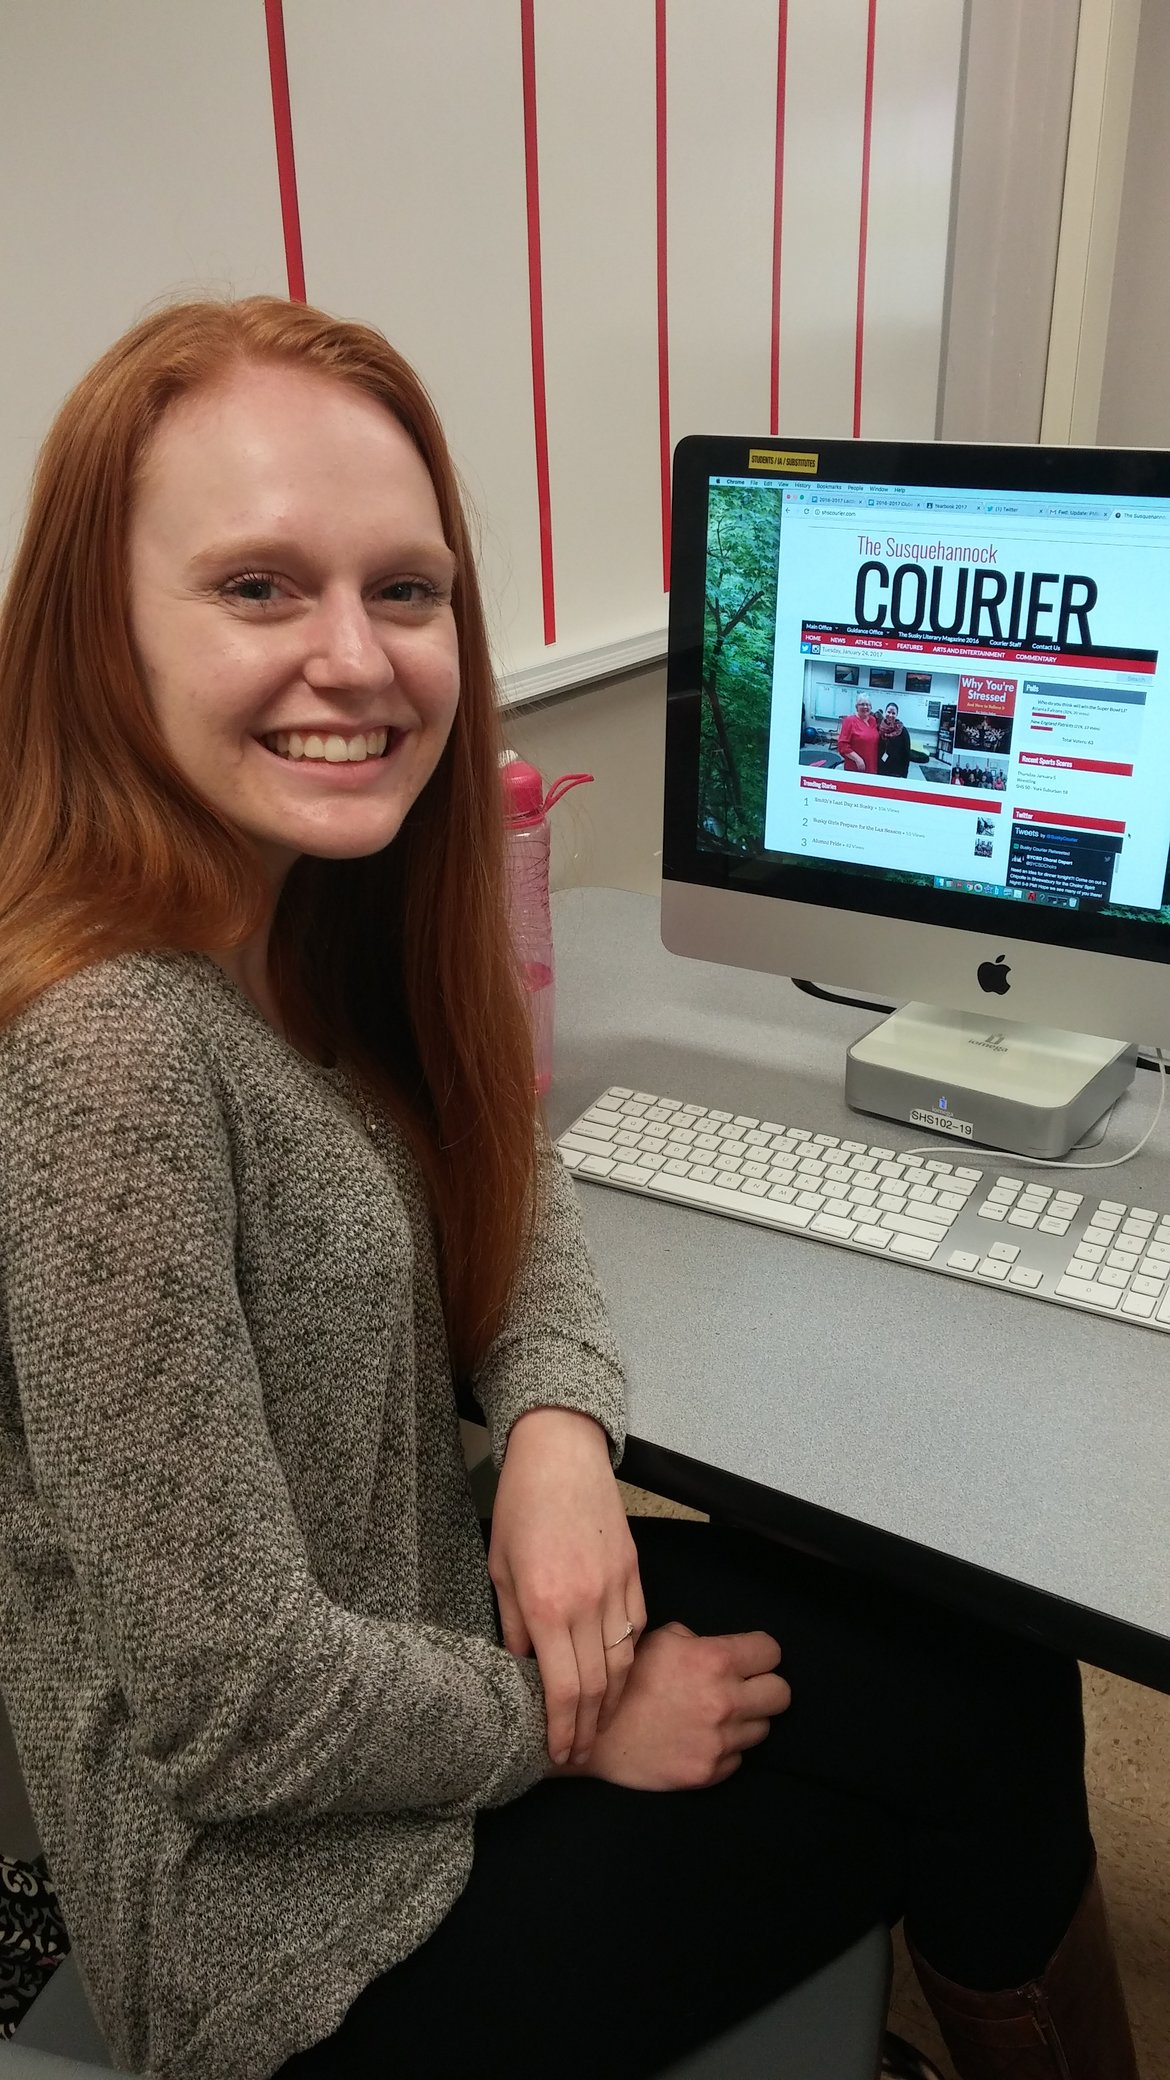 Senior Emily Rivers is a proud member of the Courier and enjoys working hard to provide the school with news. Photo by: Ariel Barbera